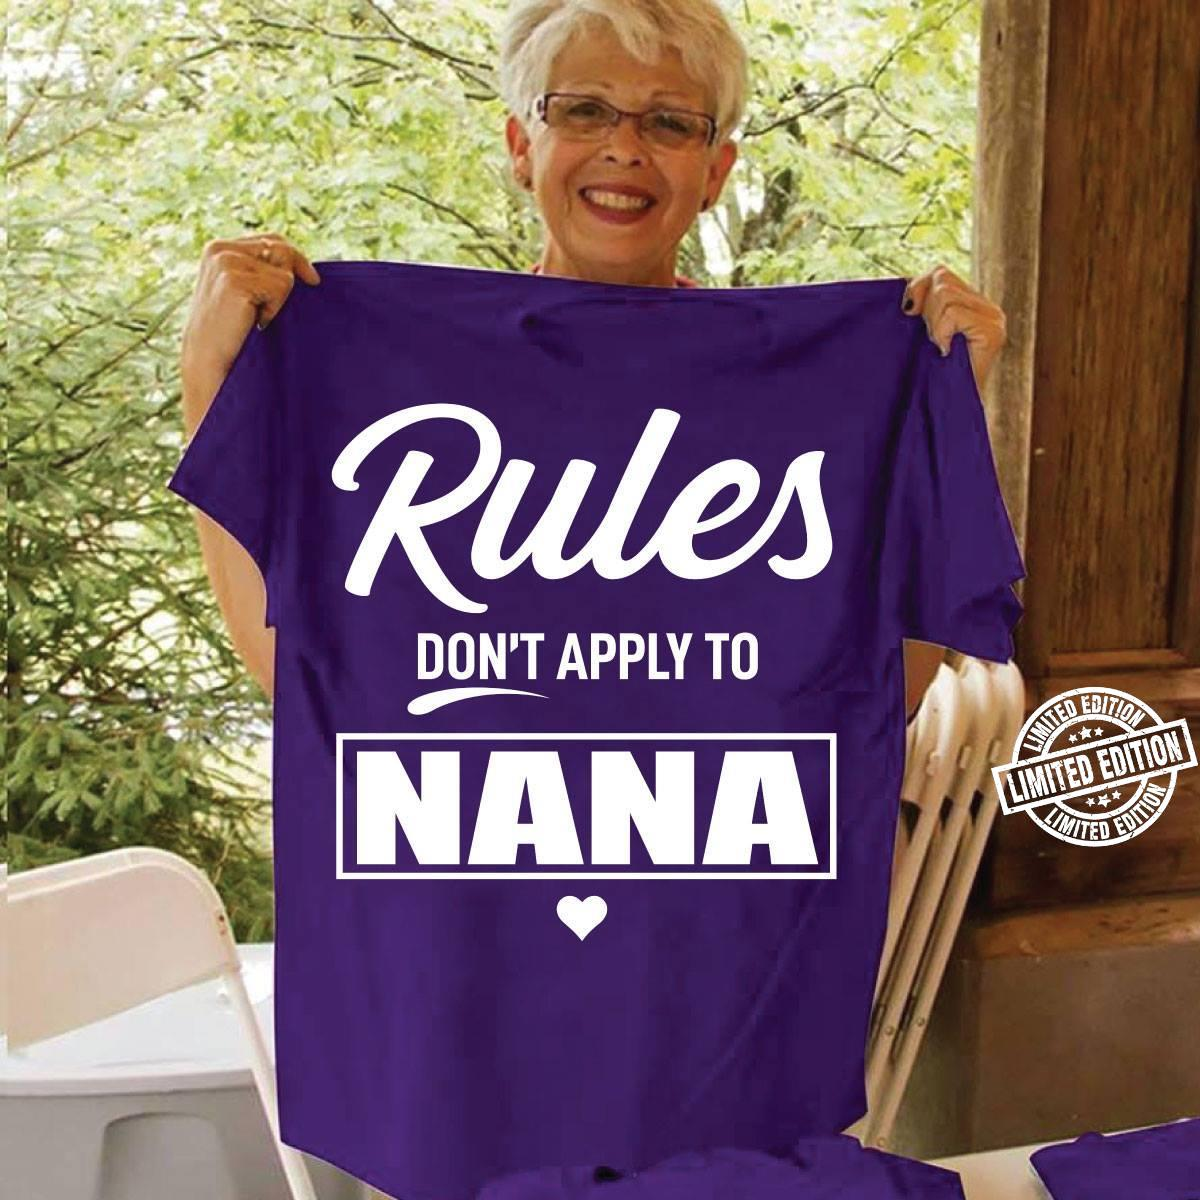 Rules don't apply to Nana shirt